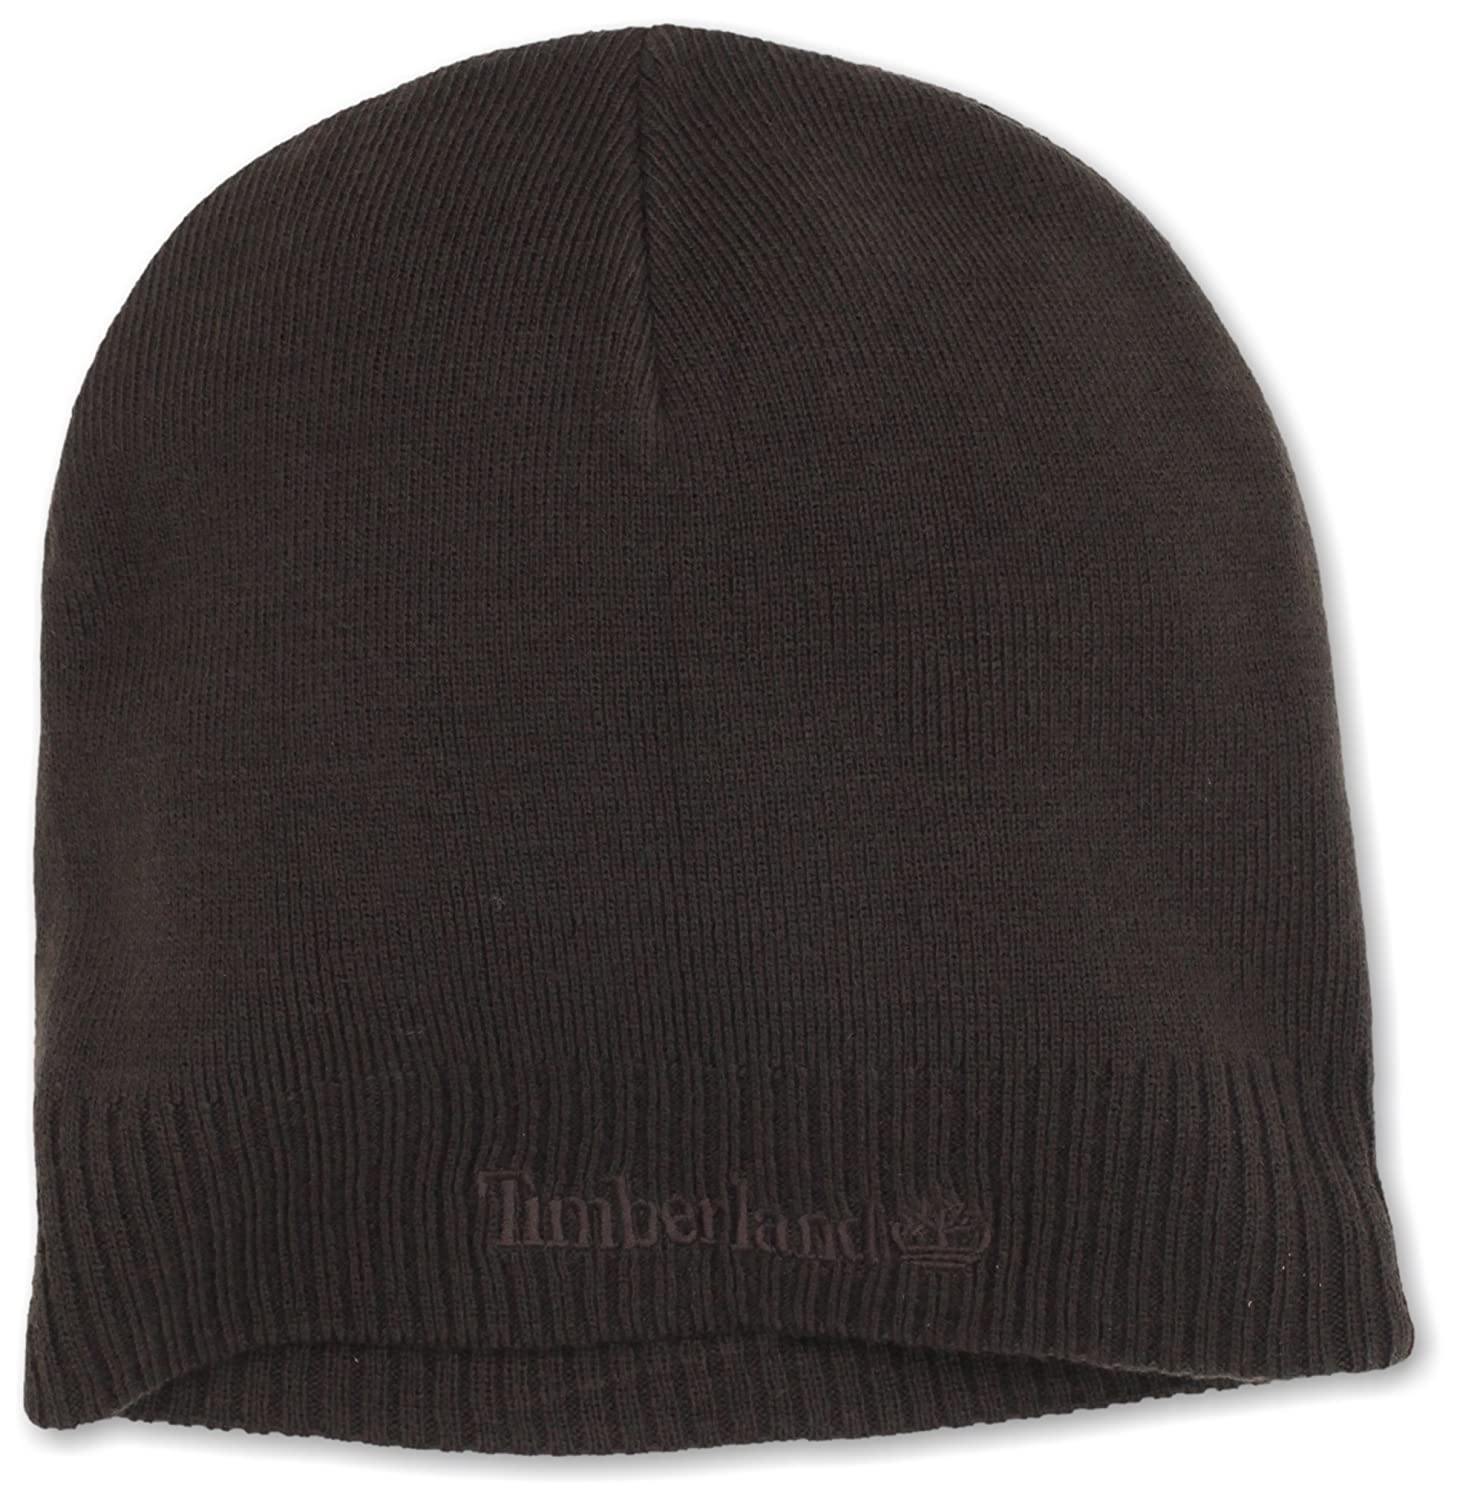 5bc476d8 Timberland Men's Basic Beanie, Brown, One Size at Amazon Men's Clothing  store: Skull Caps